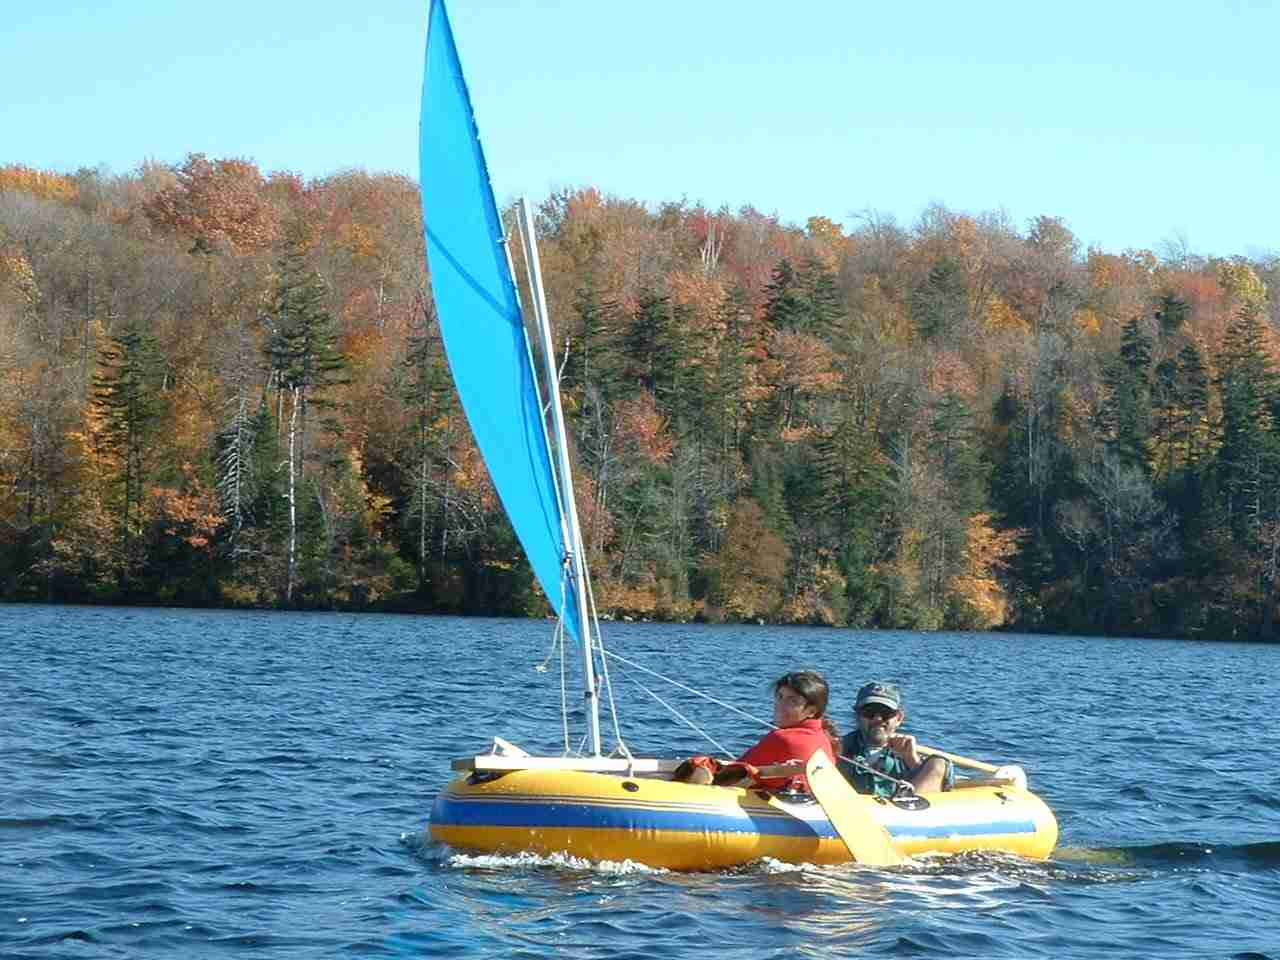 Sailboats To Go » Sail Kit Plans for Canoes and Inflatable Rafts